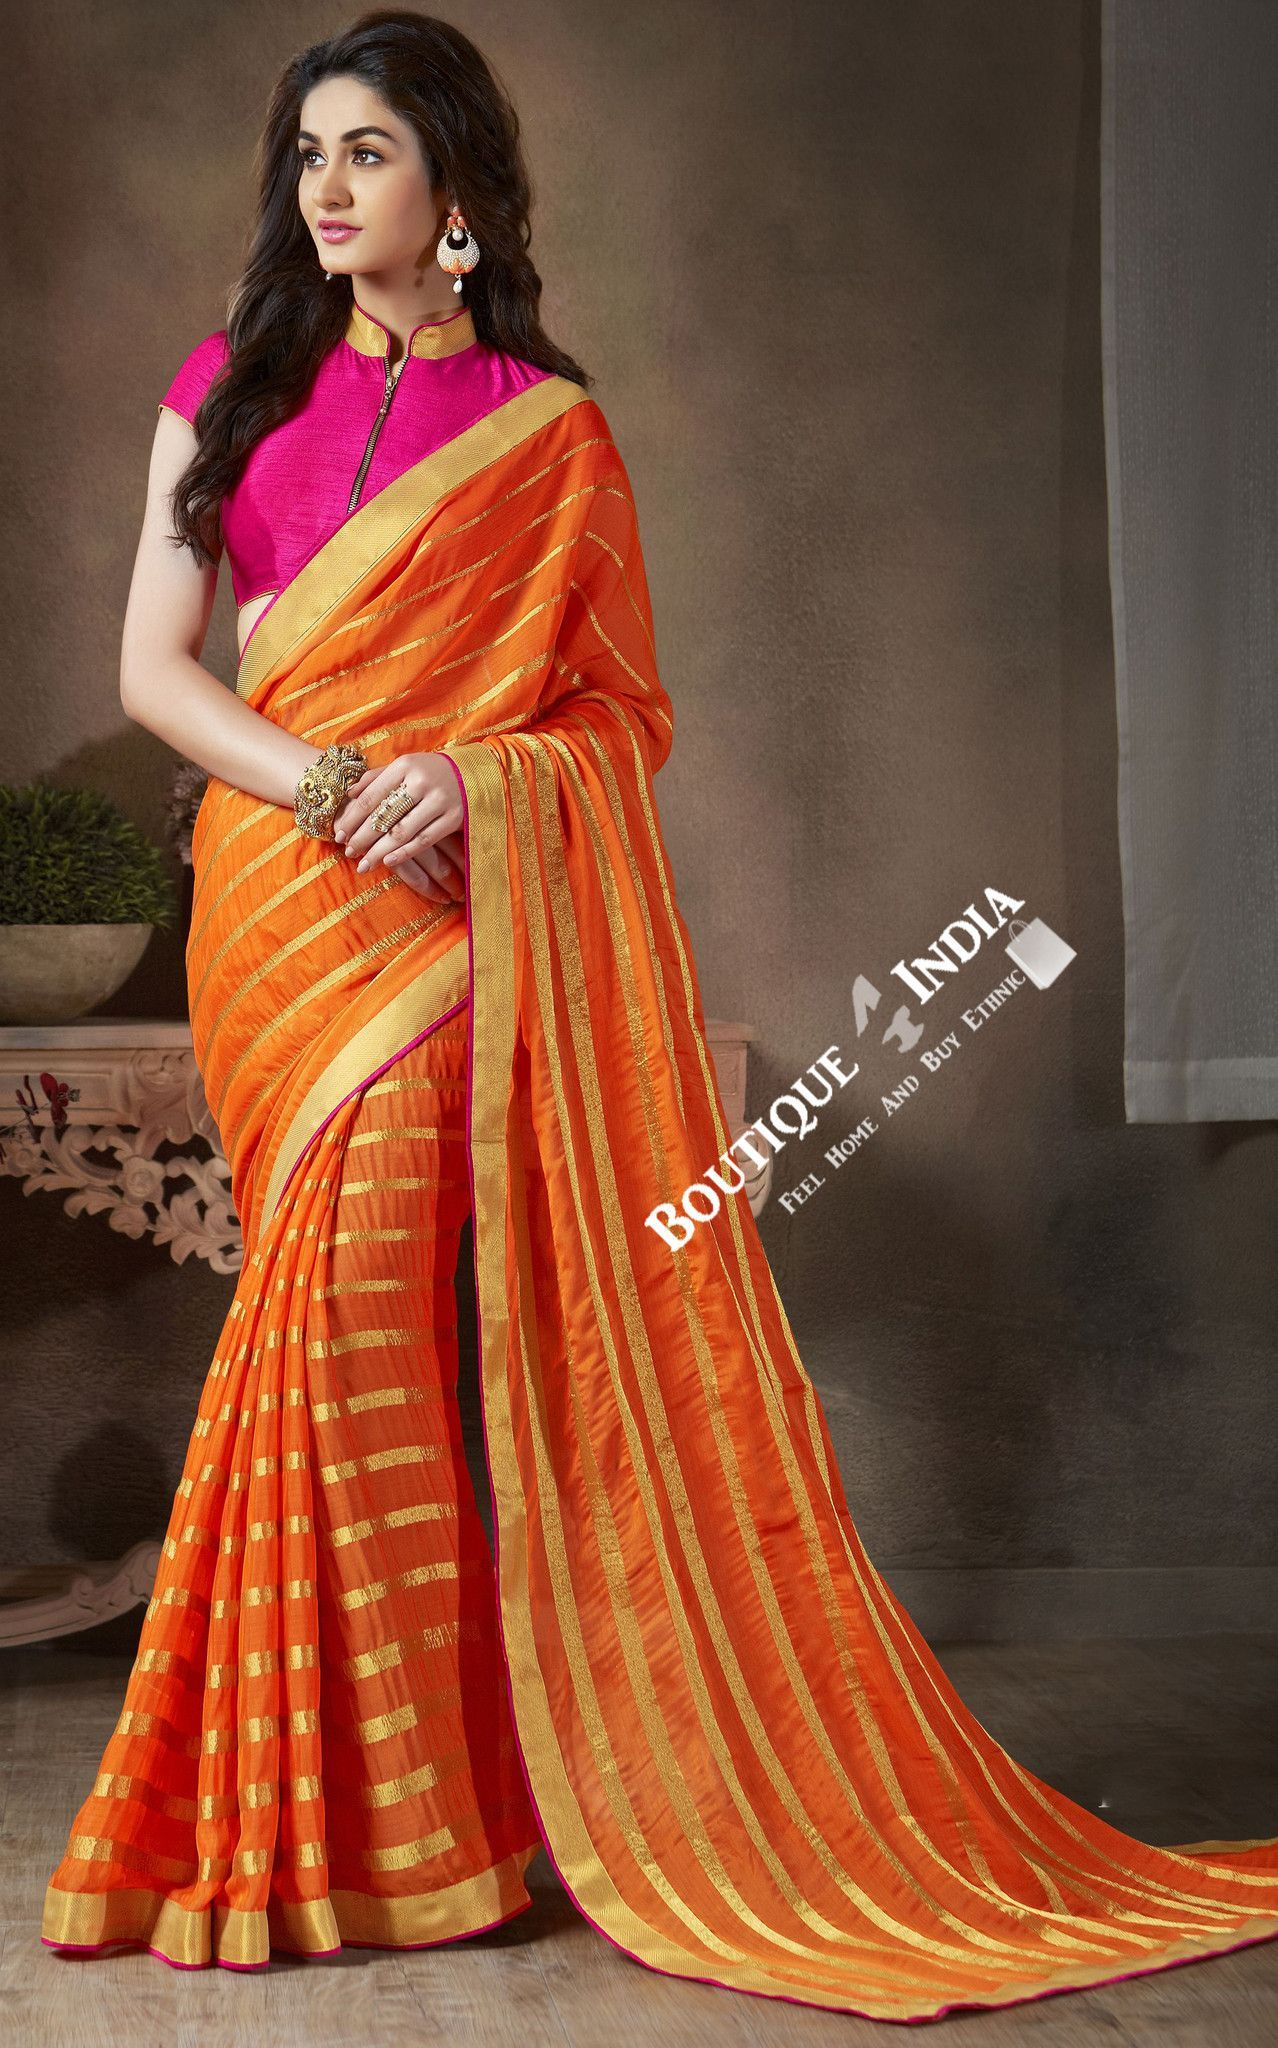 Peach color saree for wedding sarees  net and chiffon with pink purple and golden  lace